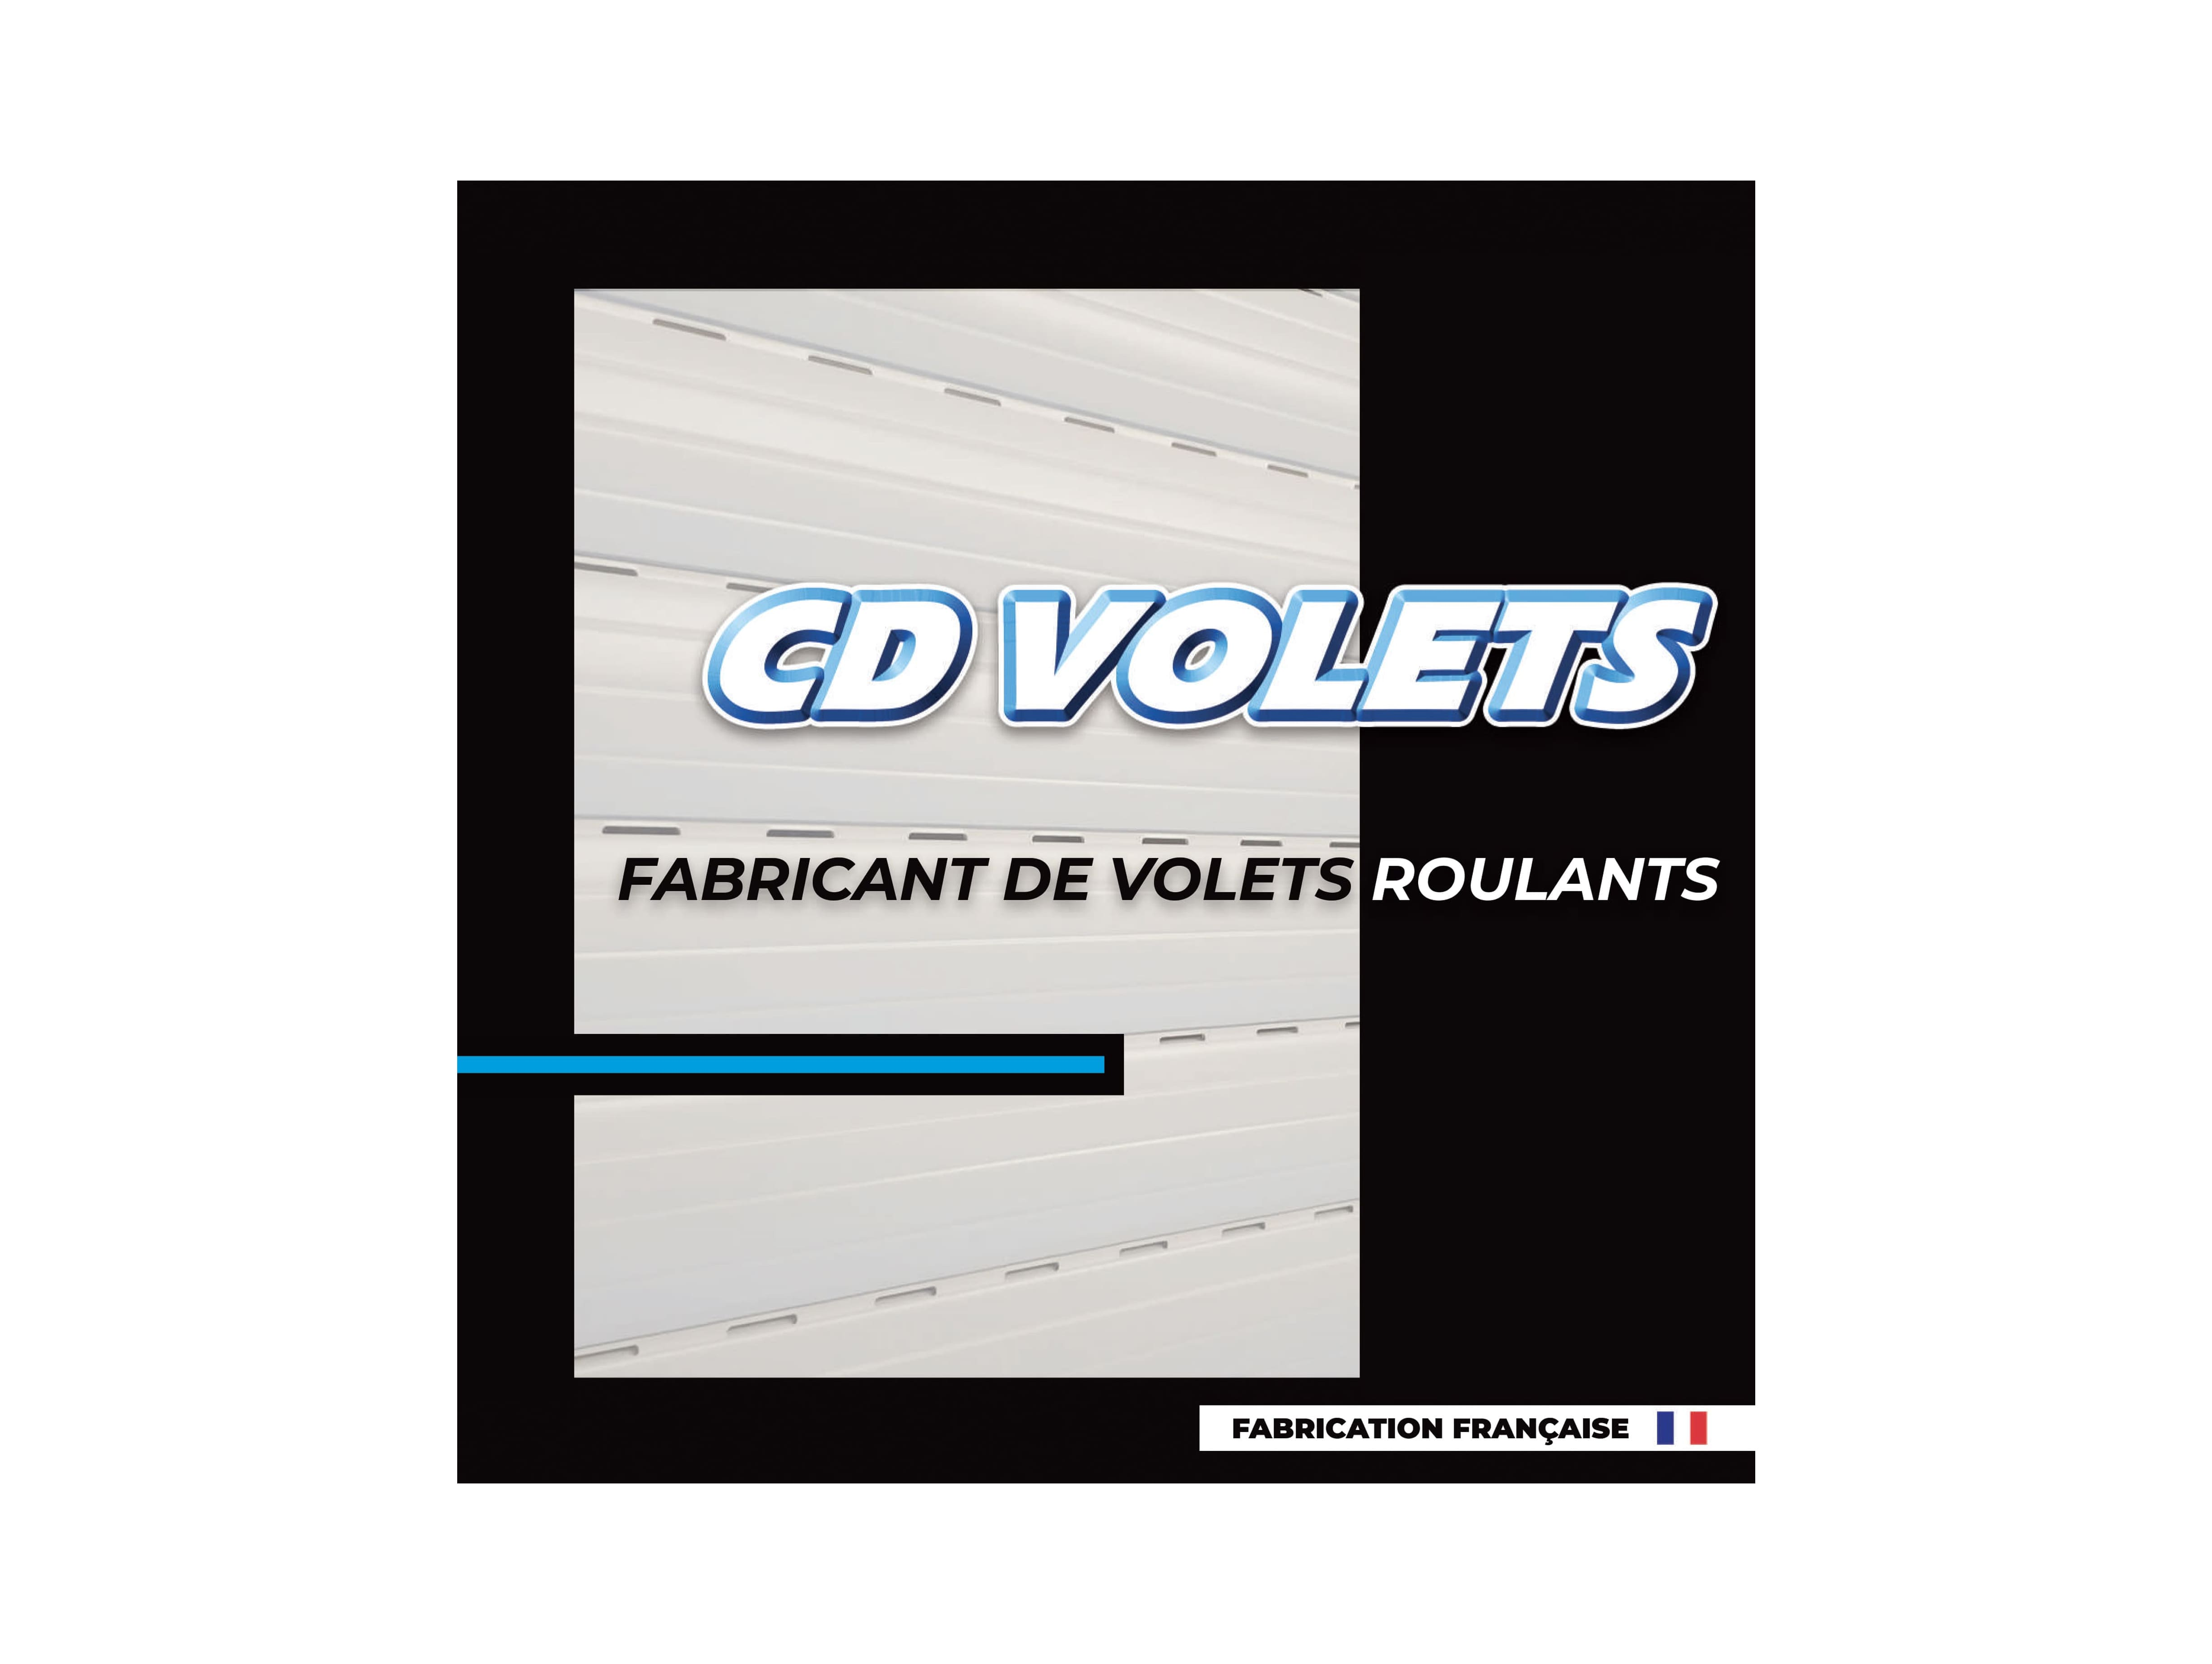 Brochure CD VOLETS